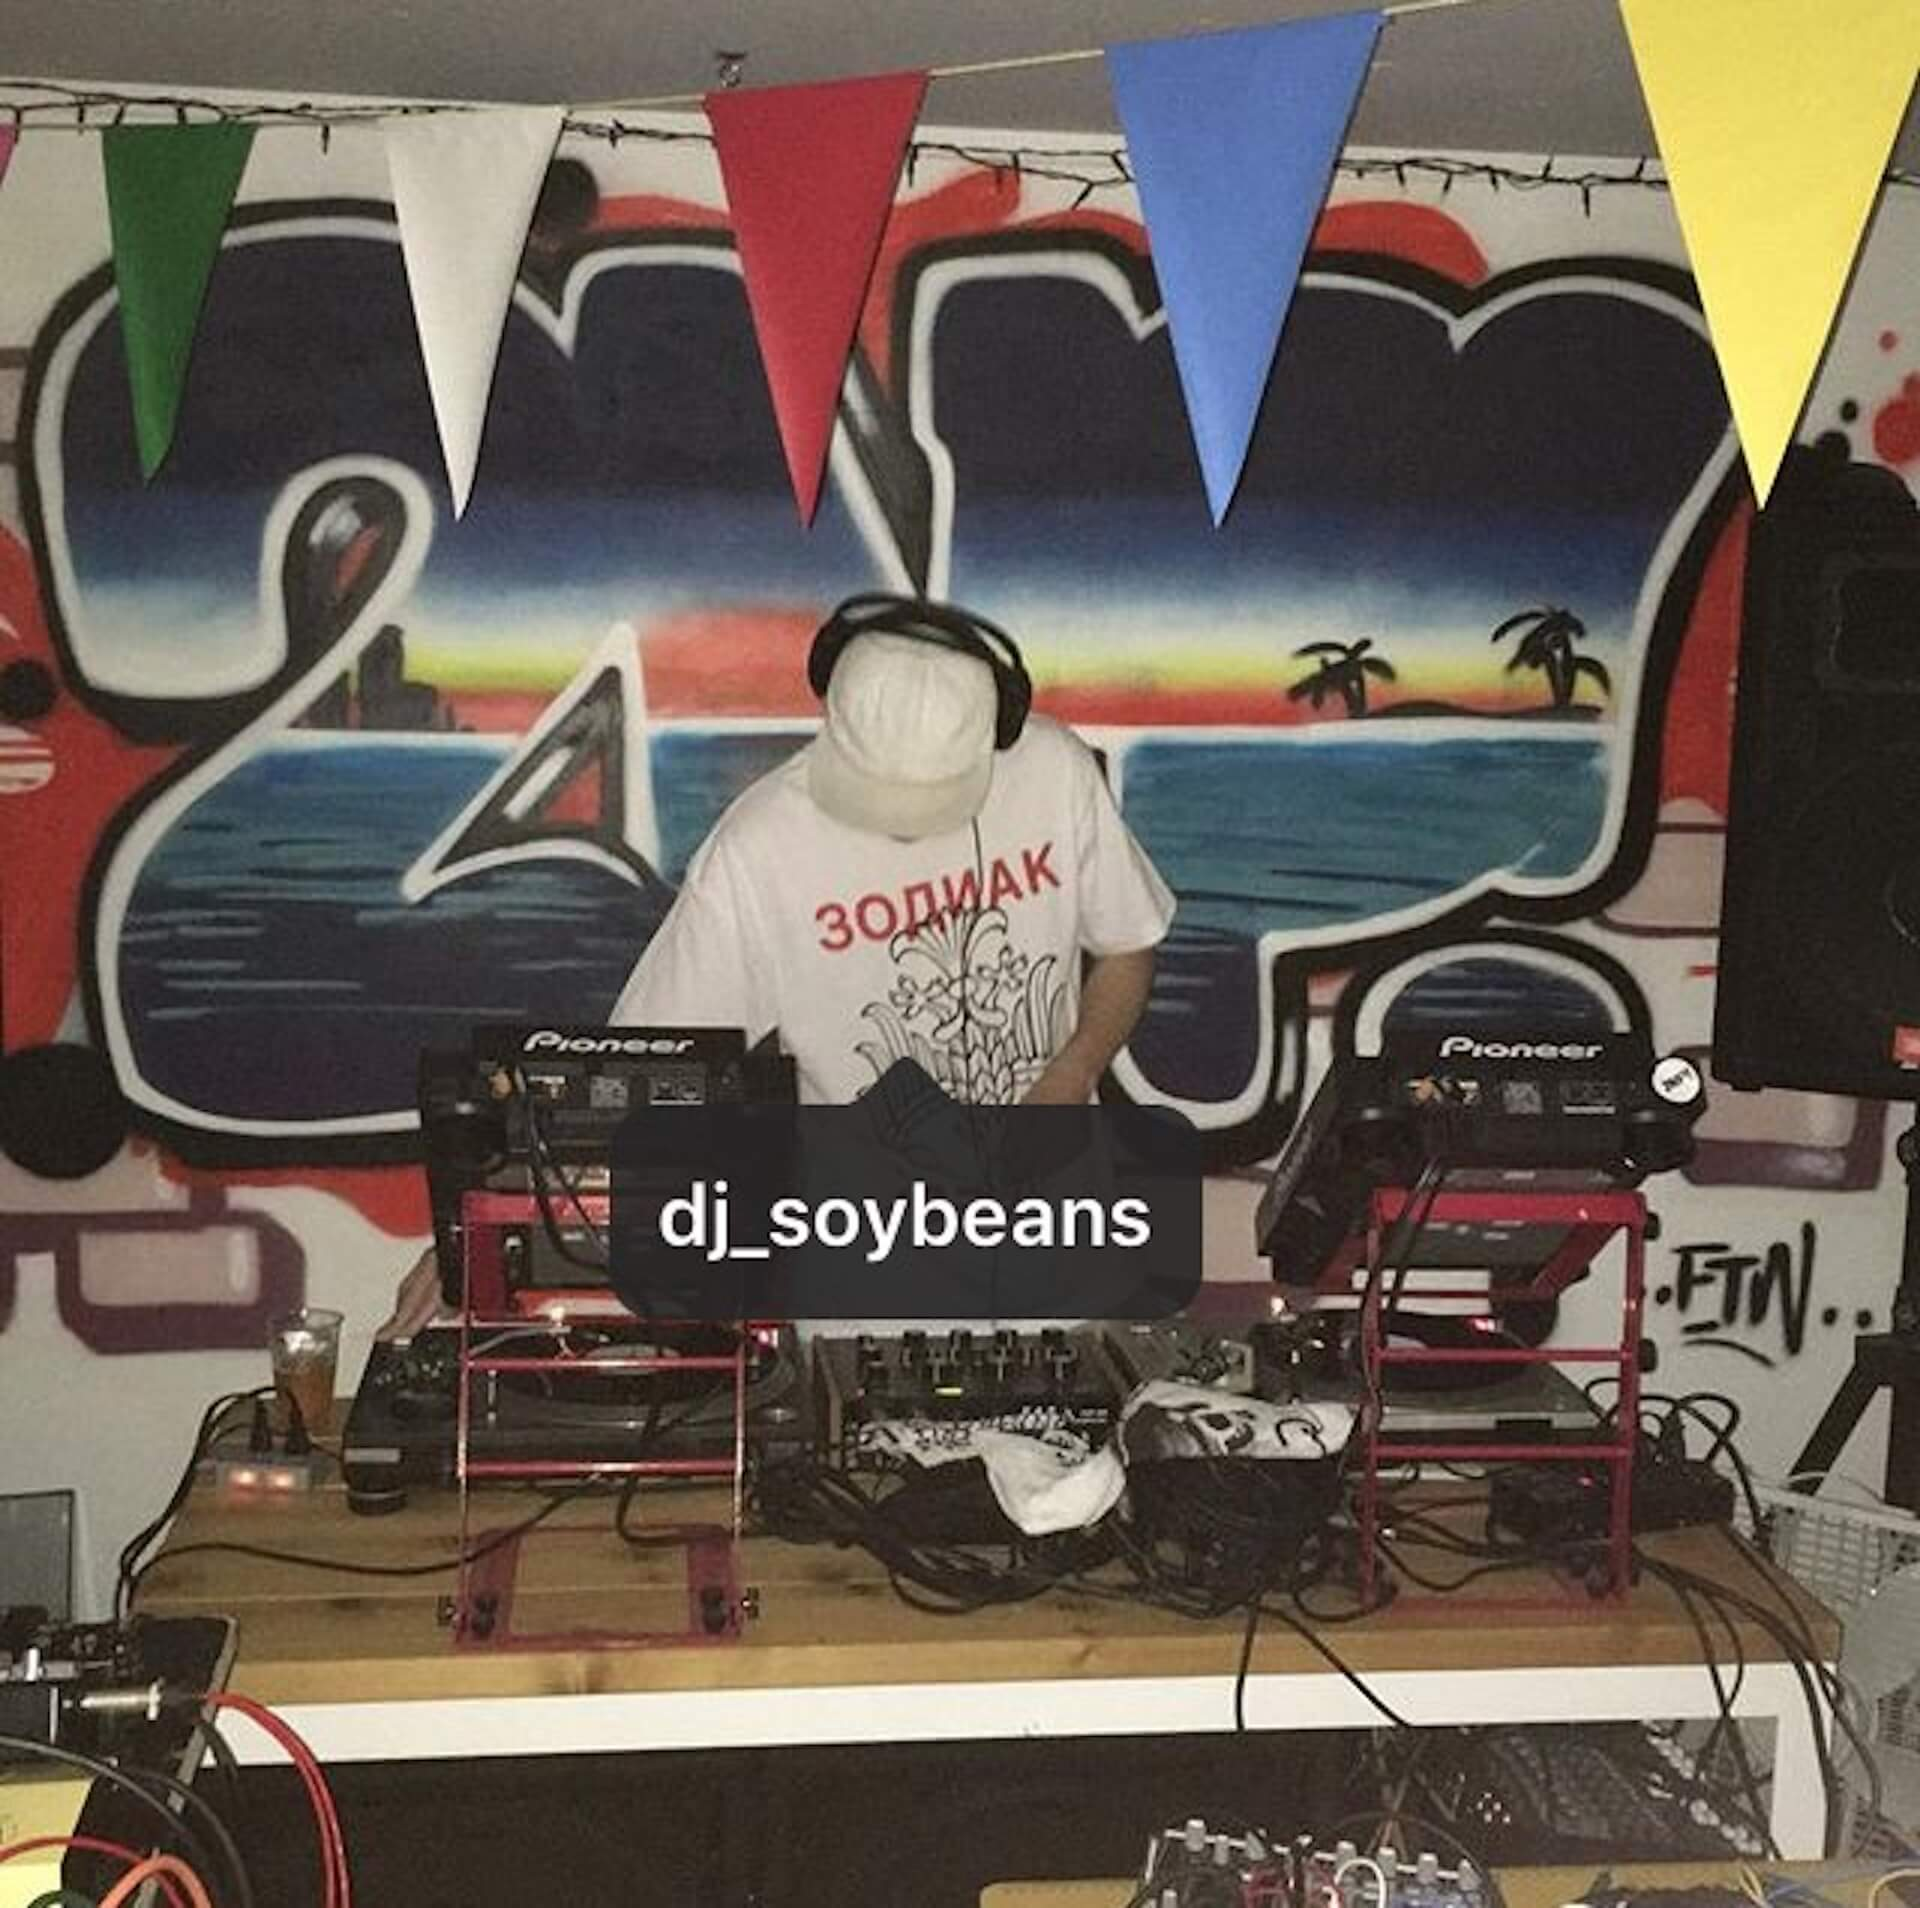 〈BLACK SMOKER RECORDS〉からDJ SOYBEANSのMIX CD『My E』がリリース music191001-djsoybeans-blacksmoker-2